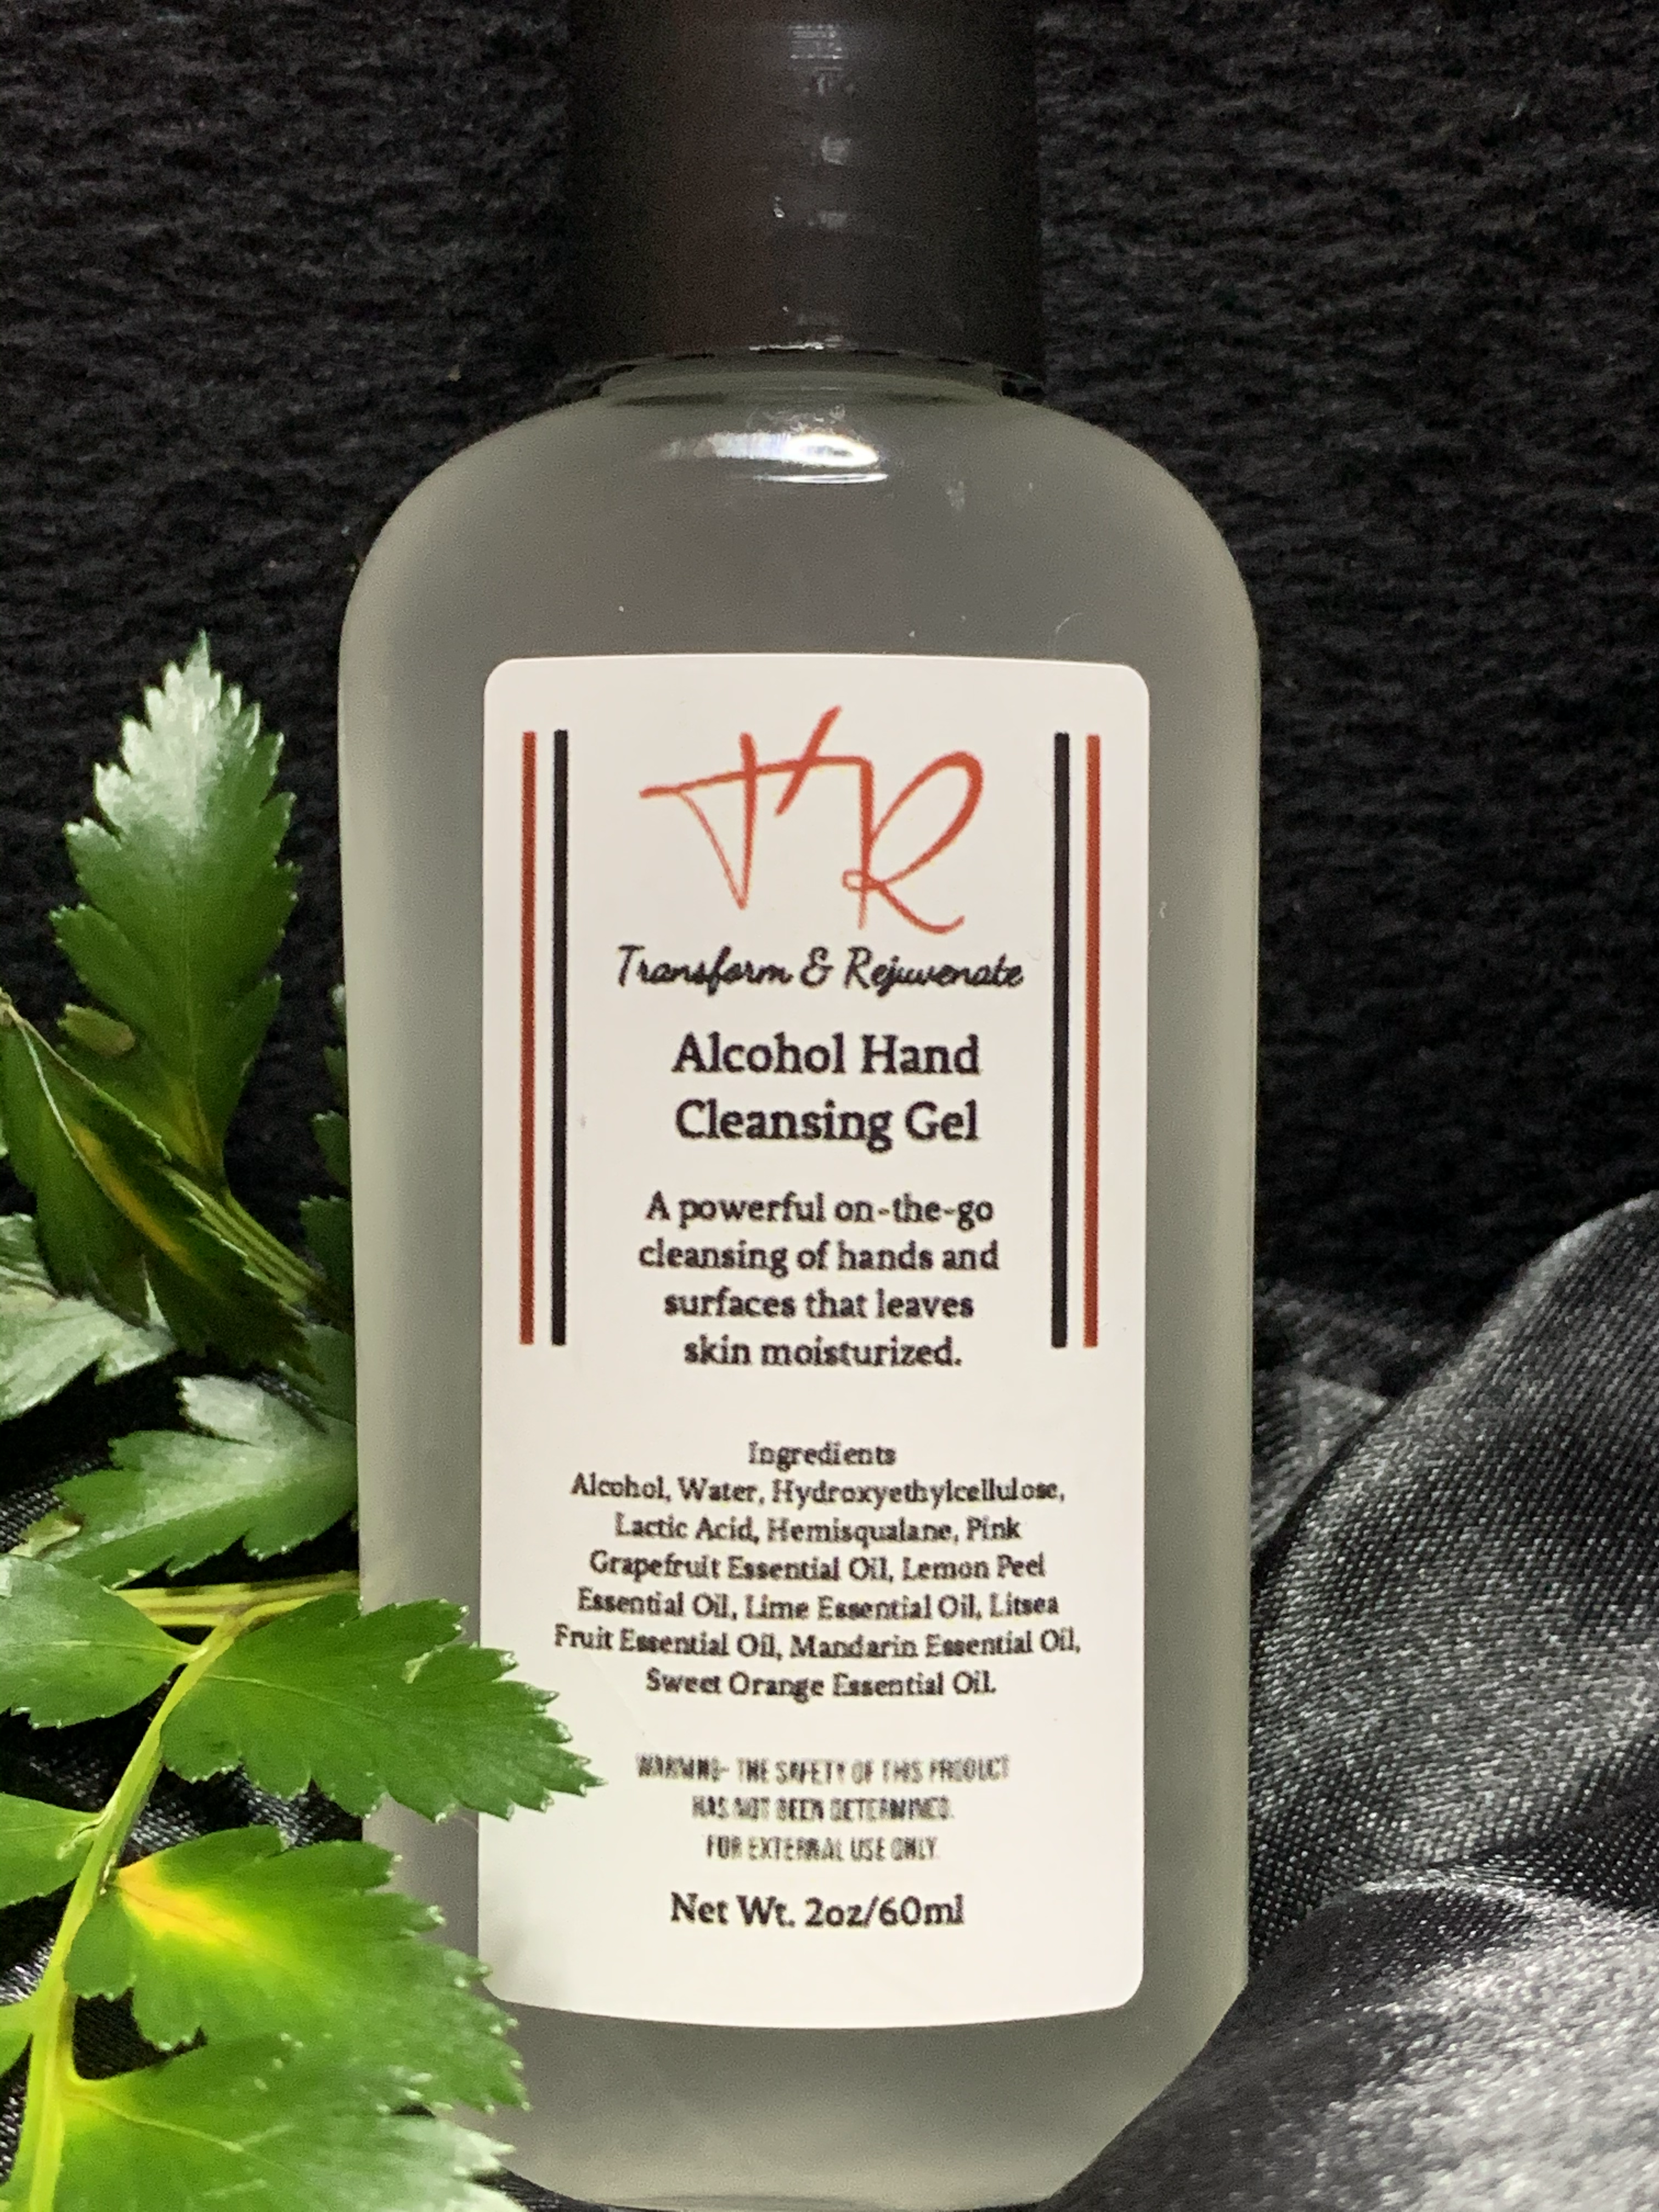 Alcohol Hand Cleansing Gel